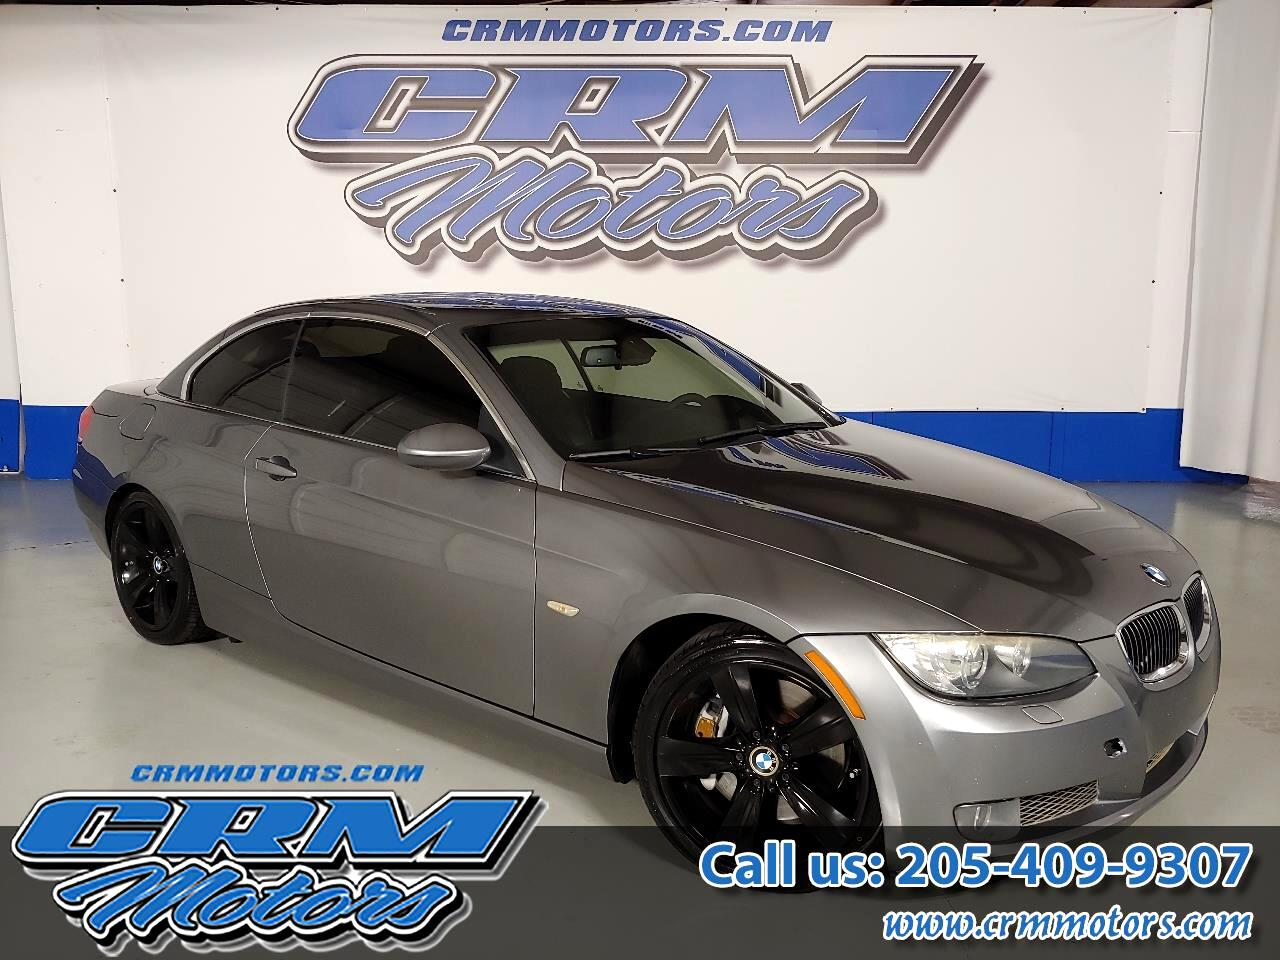 2008 BMW 3 Series CONVERTIBLE 335i WITH BLACK BMW WHEELS!